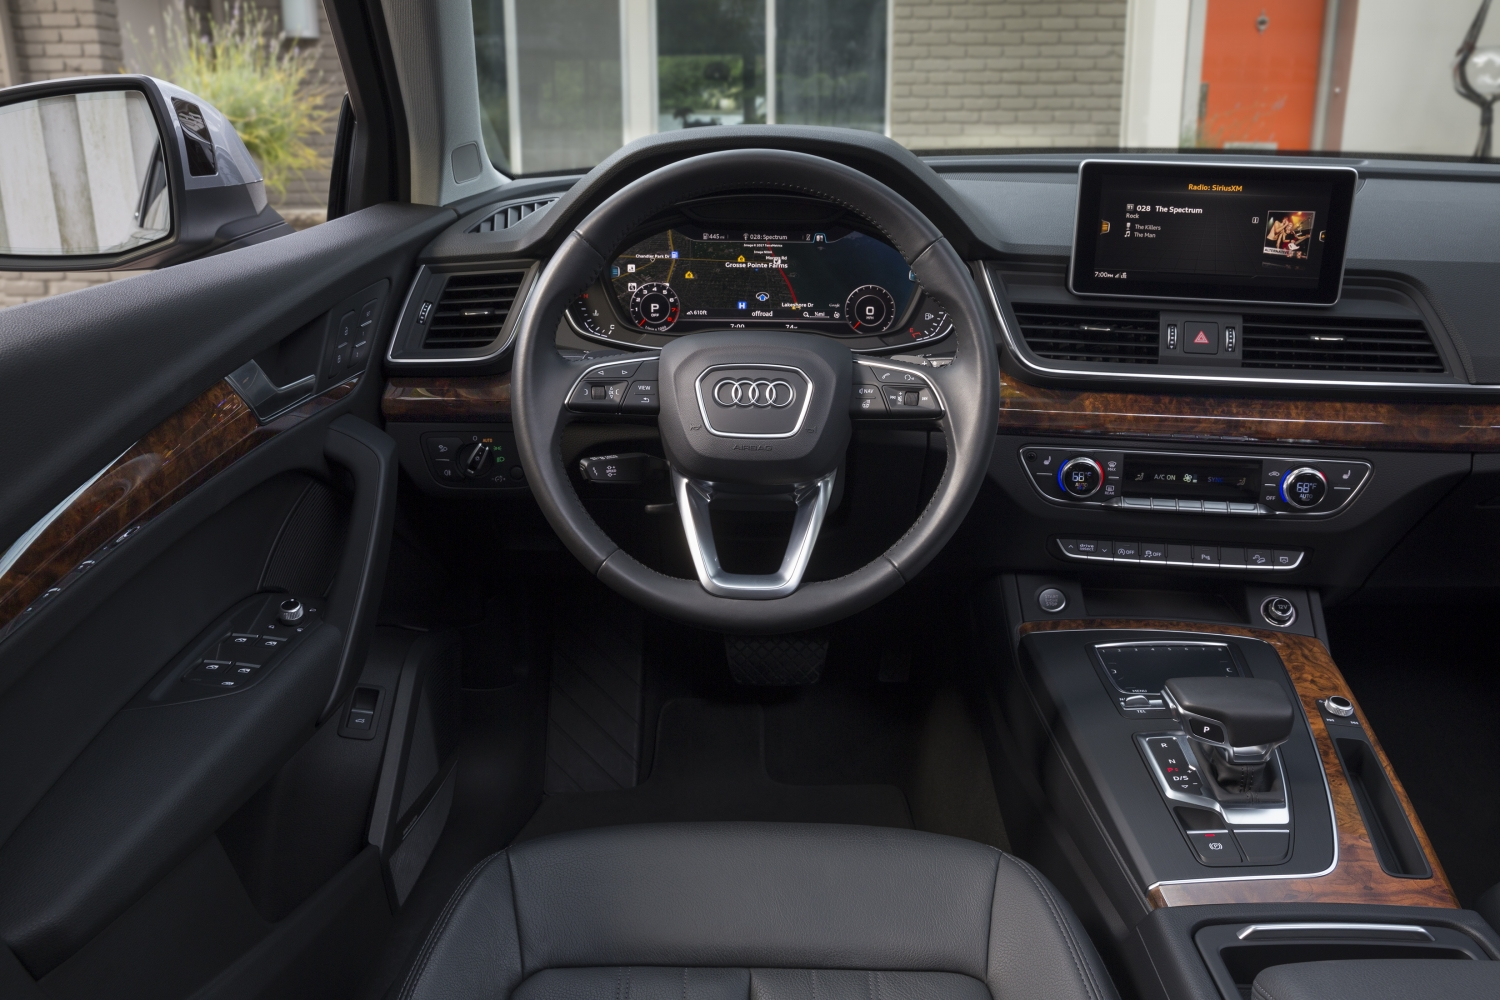 2018 audi q5 reviews roundup the unofficial audi blog audi car reviews audi news photos. Black Bedroom Furniture Sets. Home Design Ideas